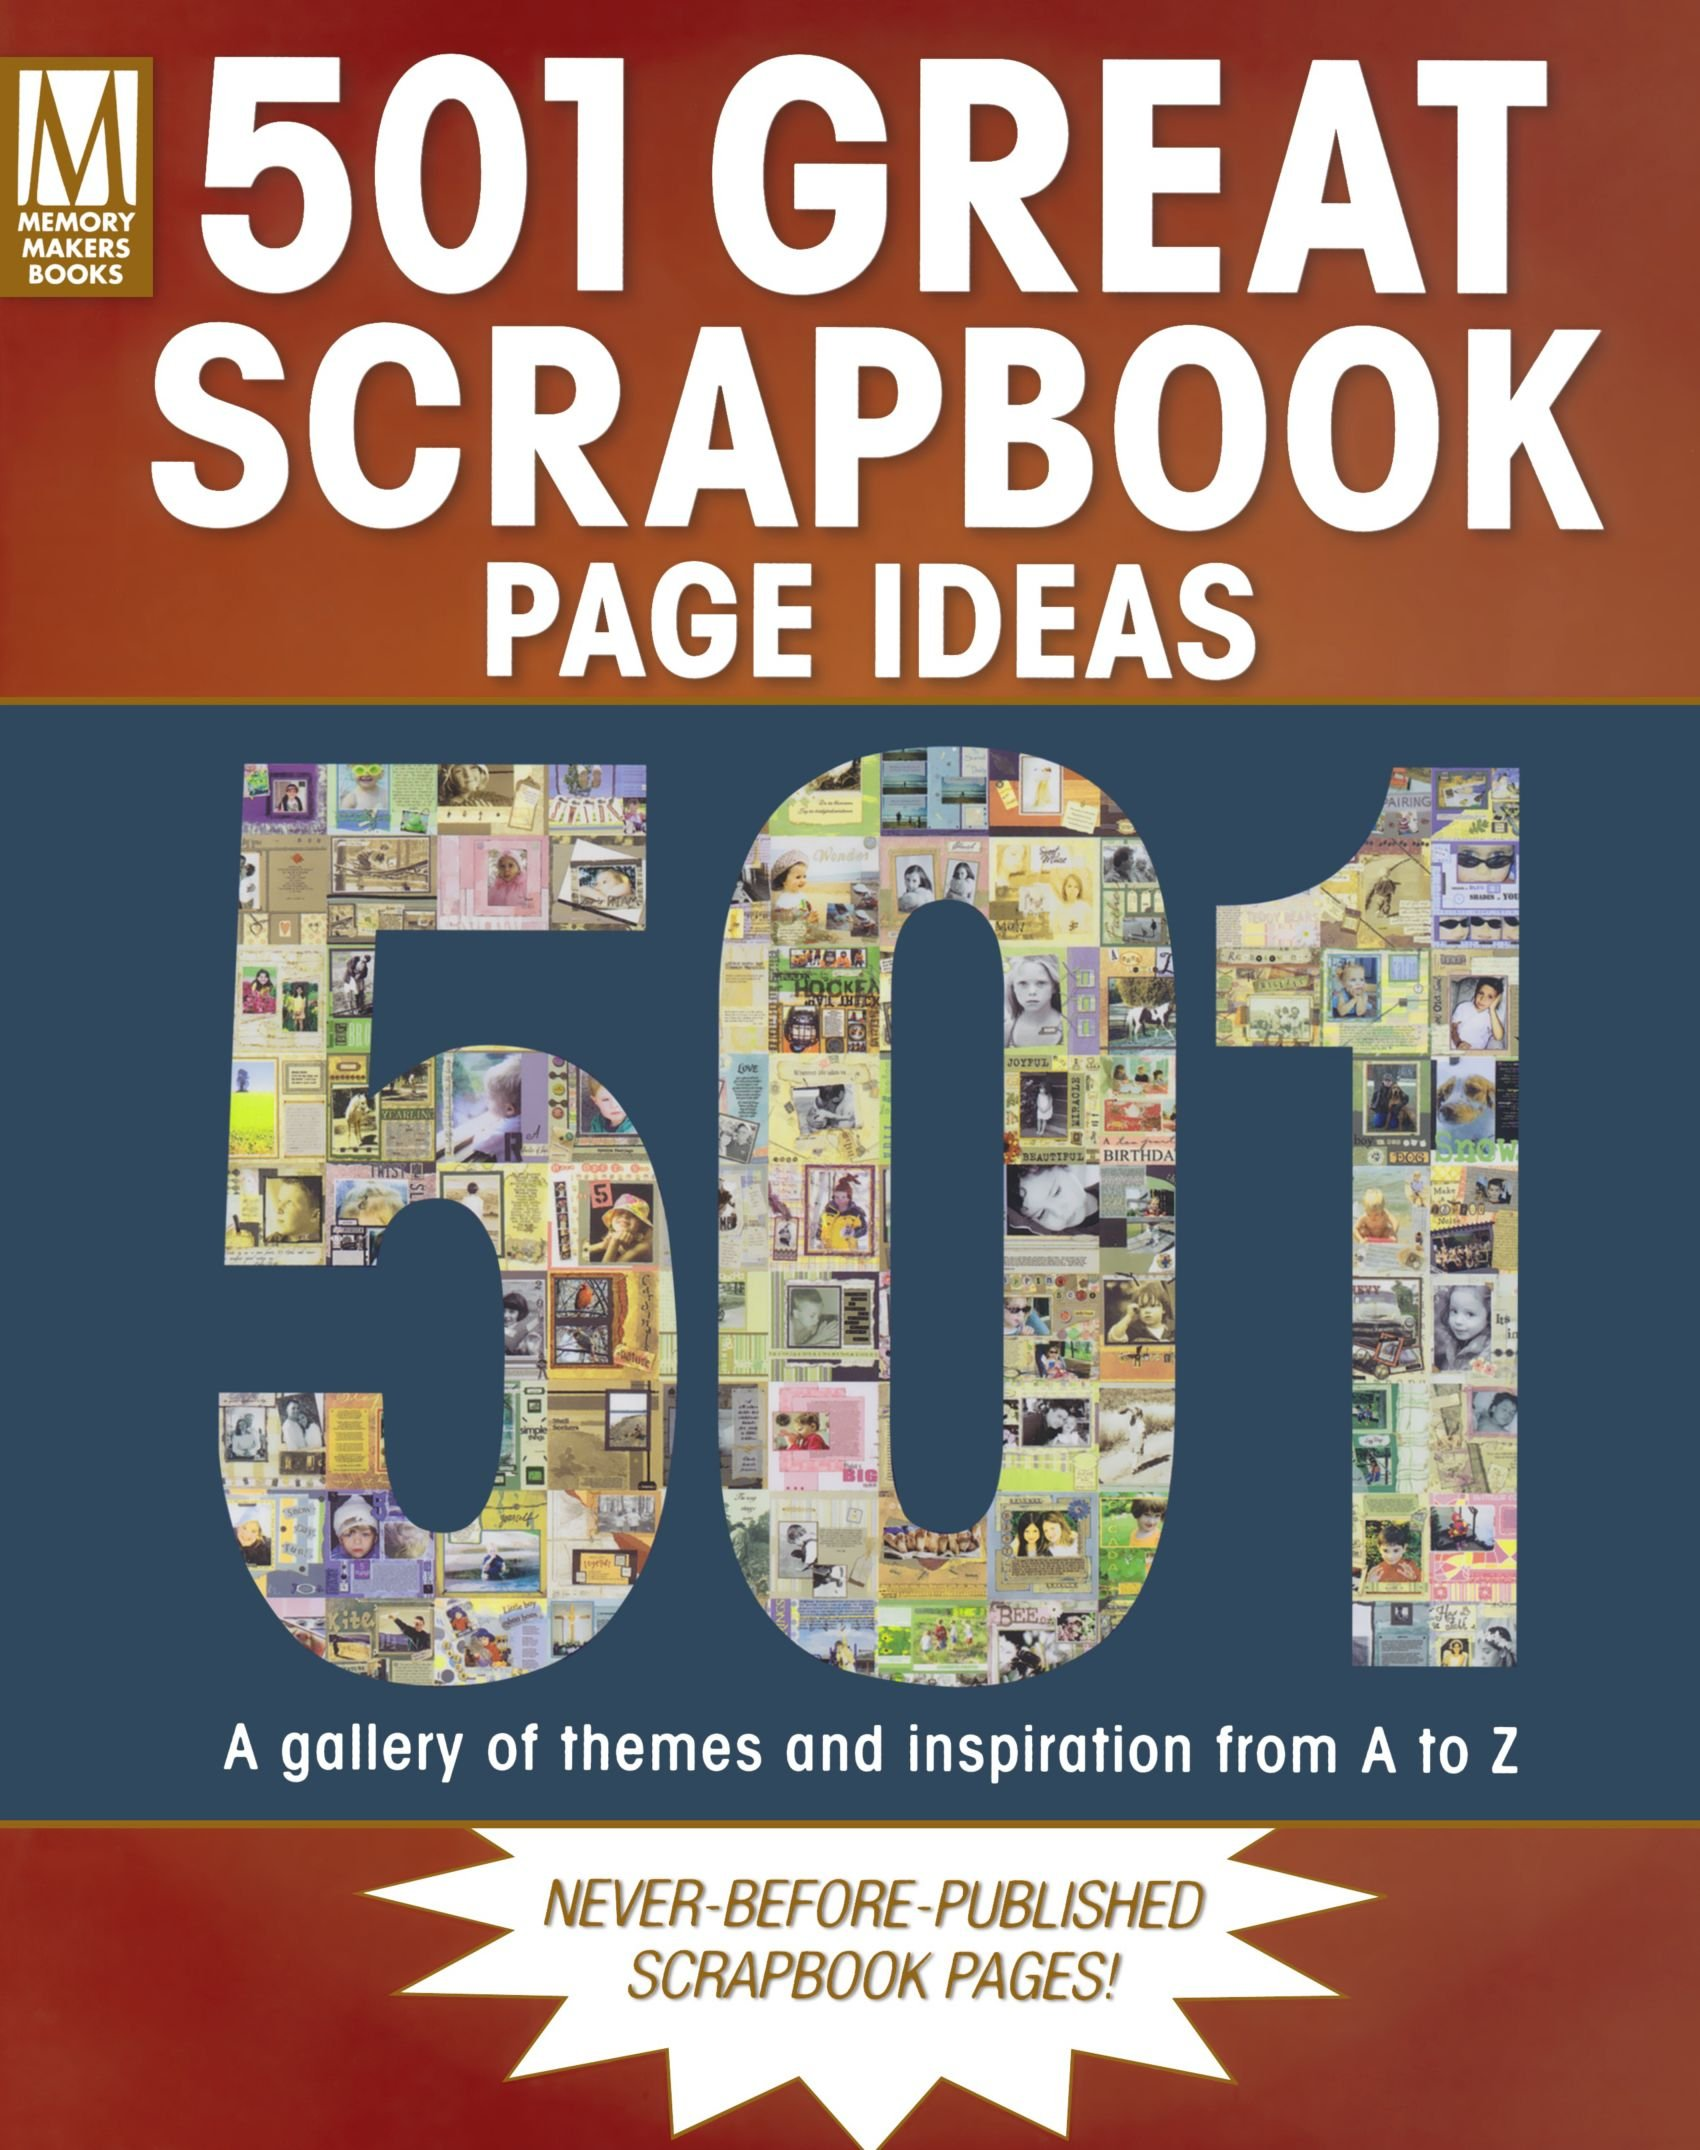 501 Great Scrapbook Page Ideas Memory Makers 9781892127525 Amazon